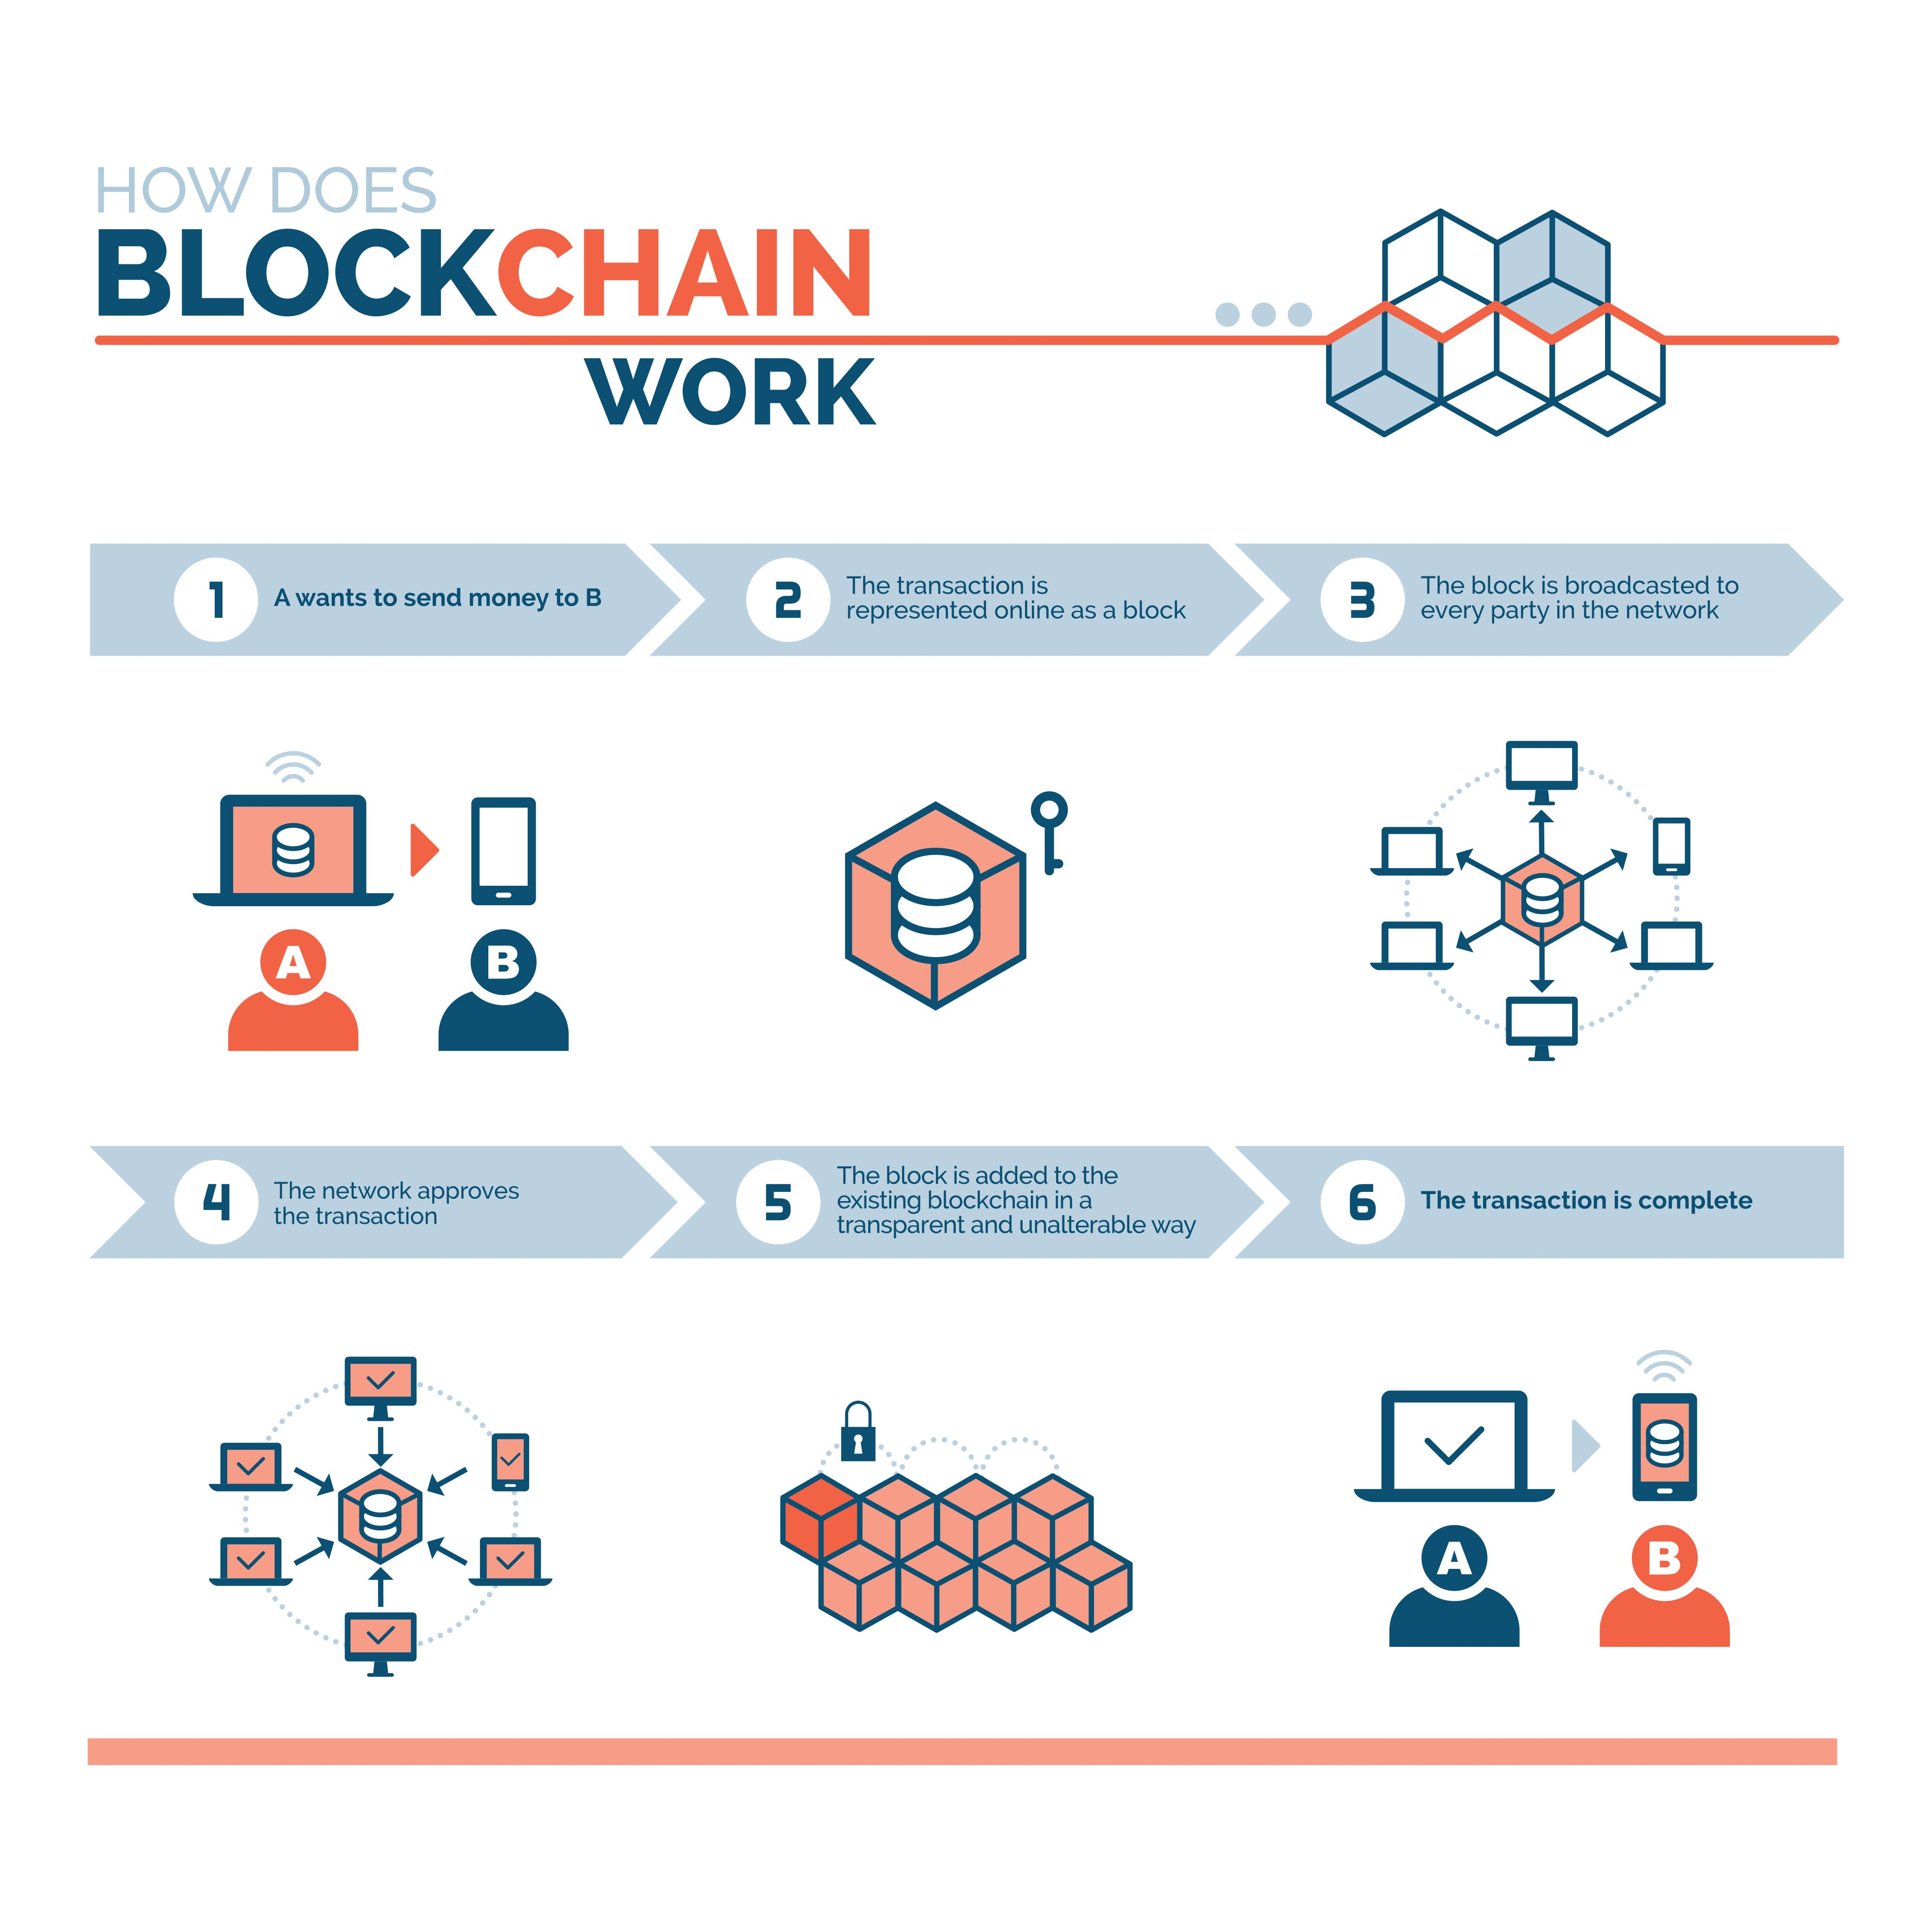 Blockchain: What's Changed?